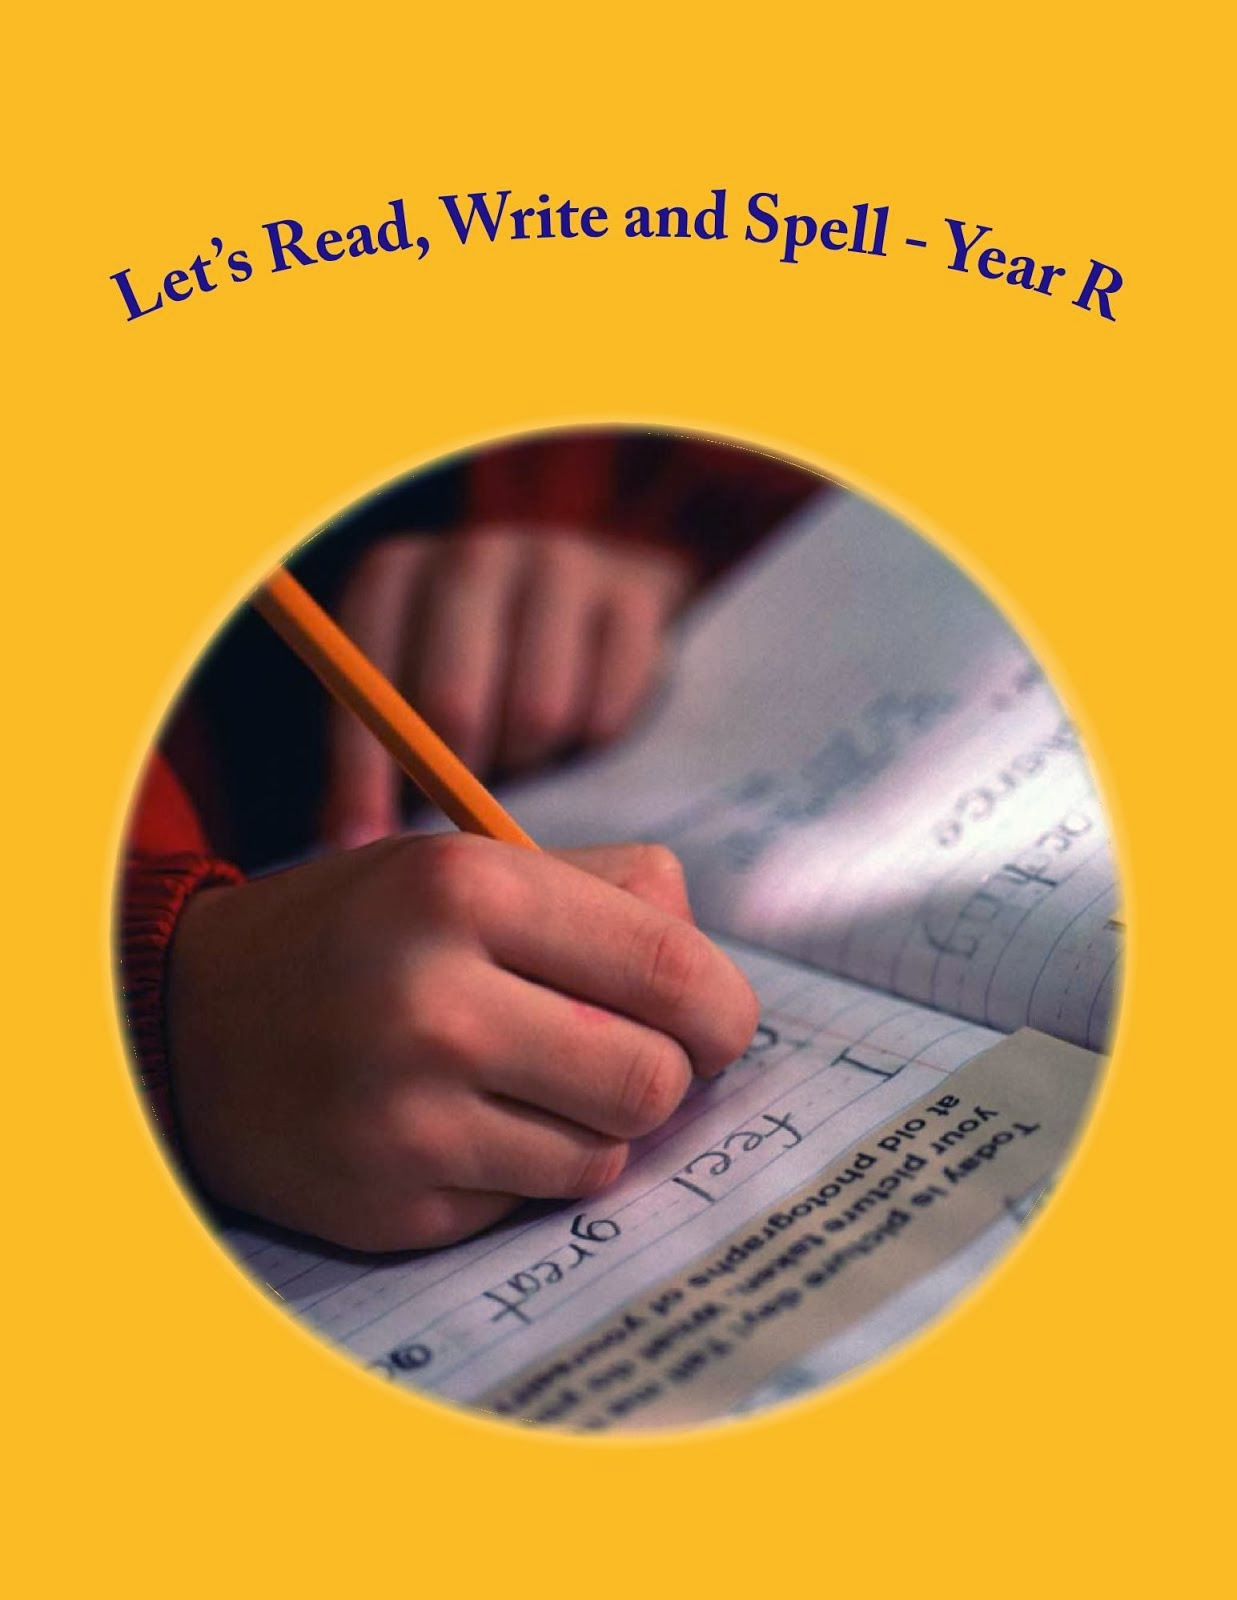 Let's Read Write and Spell